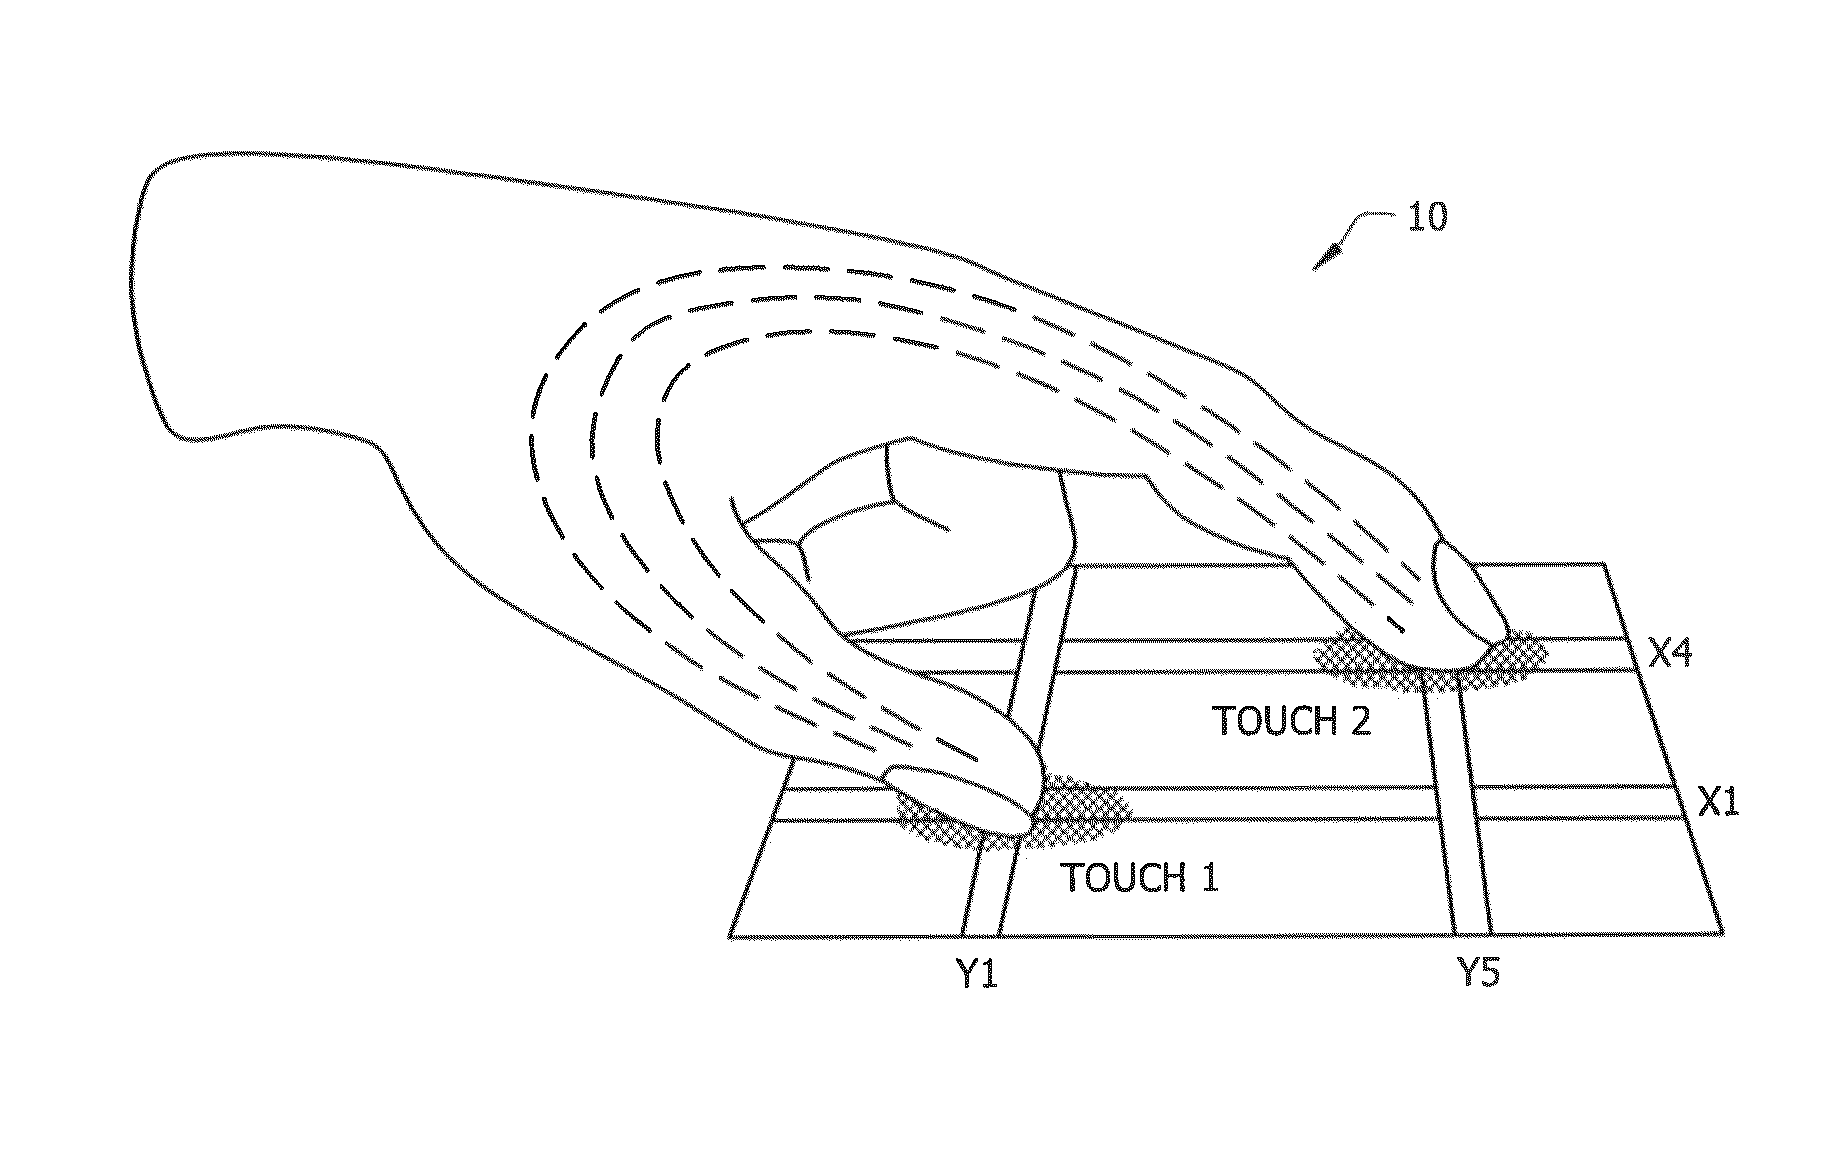 Touchscreen Patent Image.png